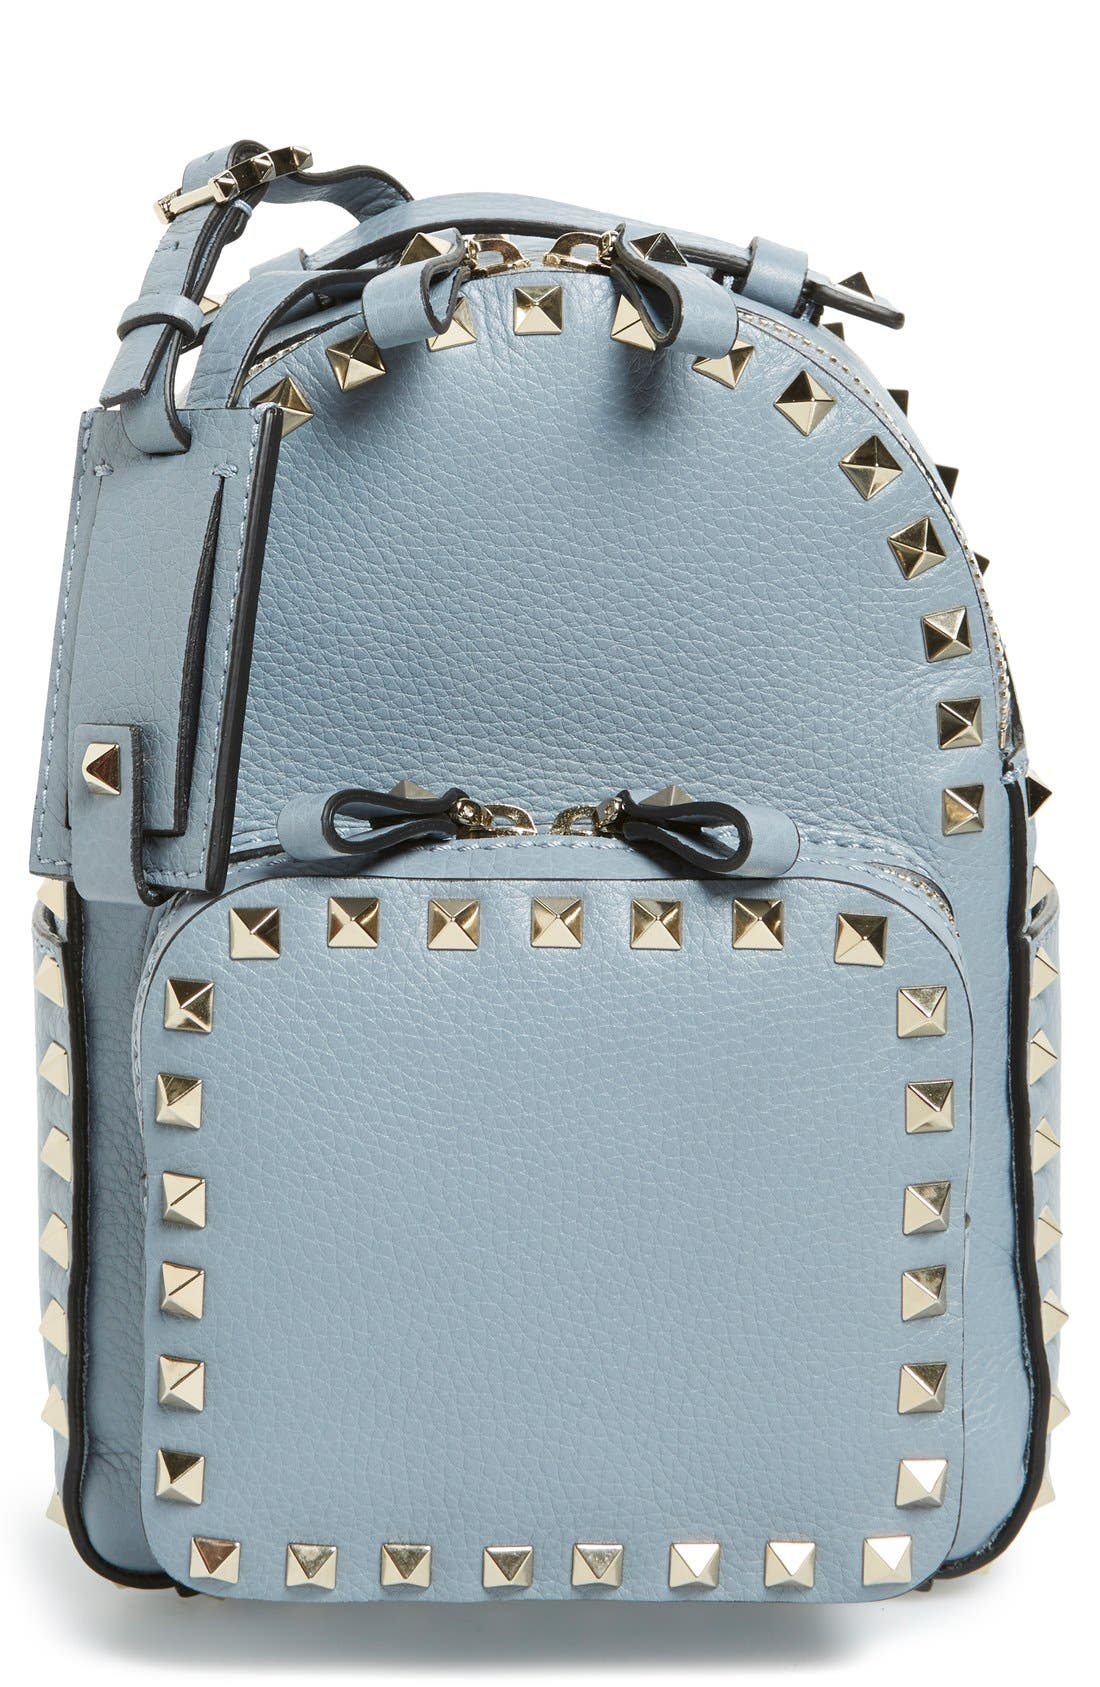 Main Image - Valentino 'Small Rockstud' Leather Backpack